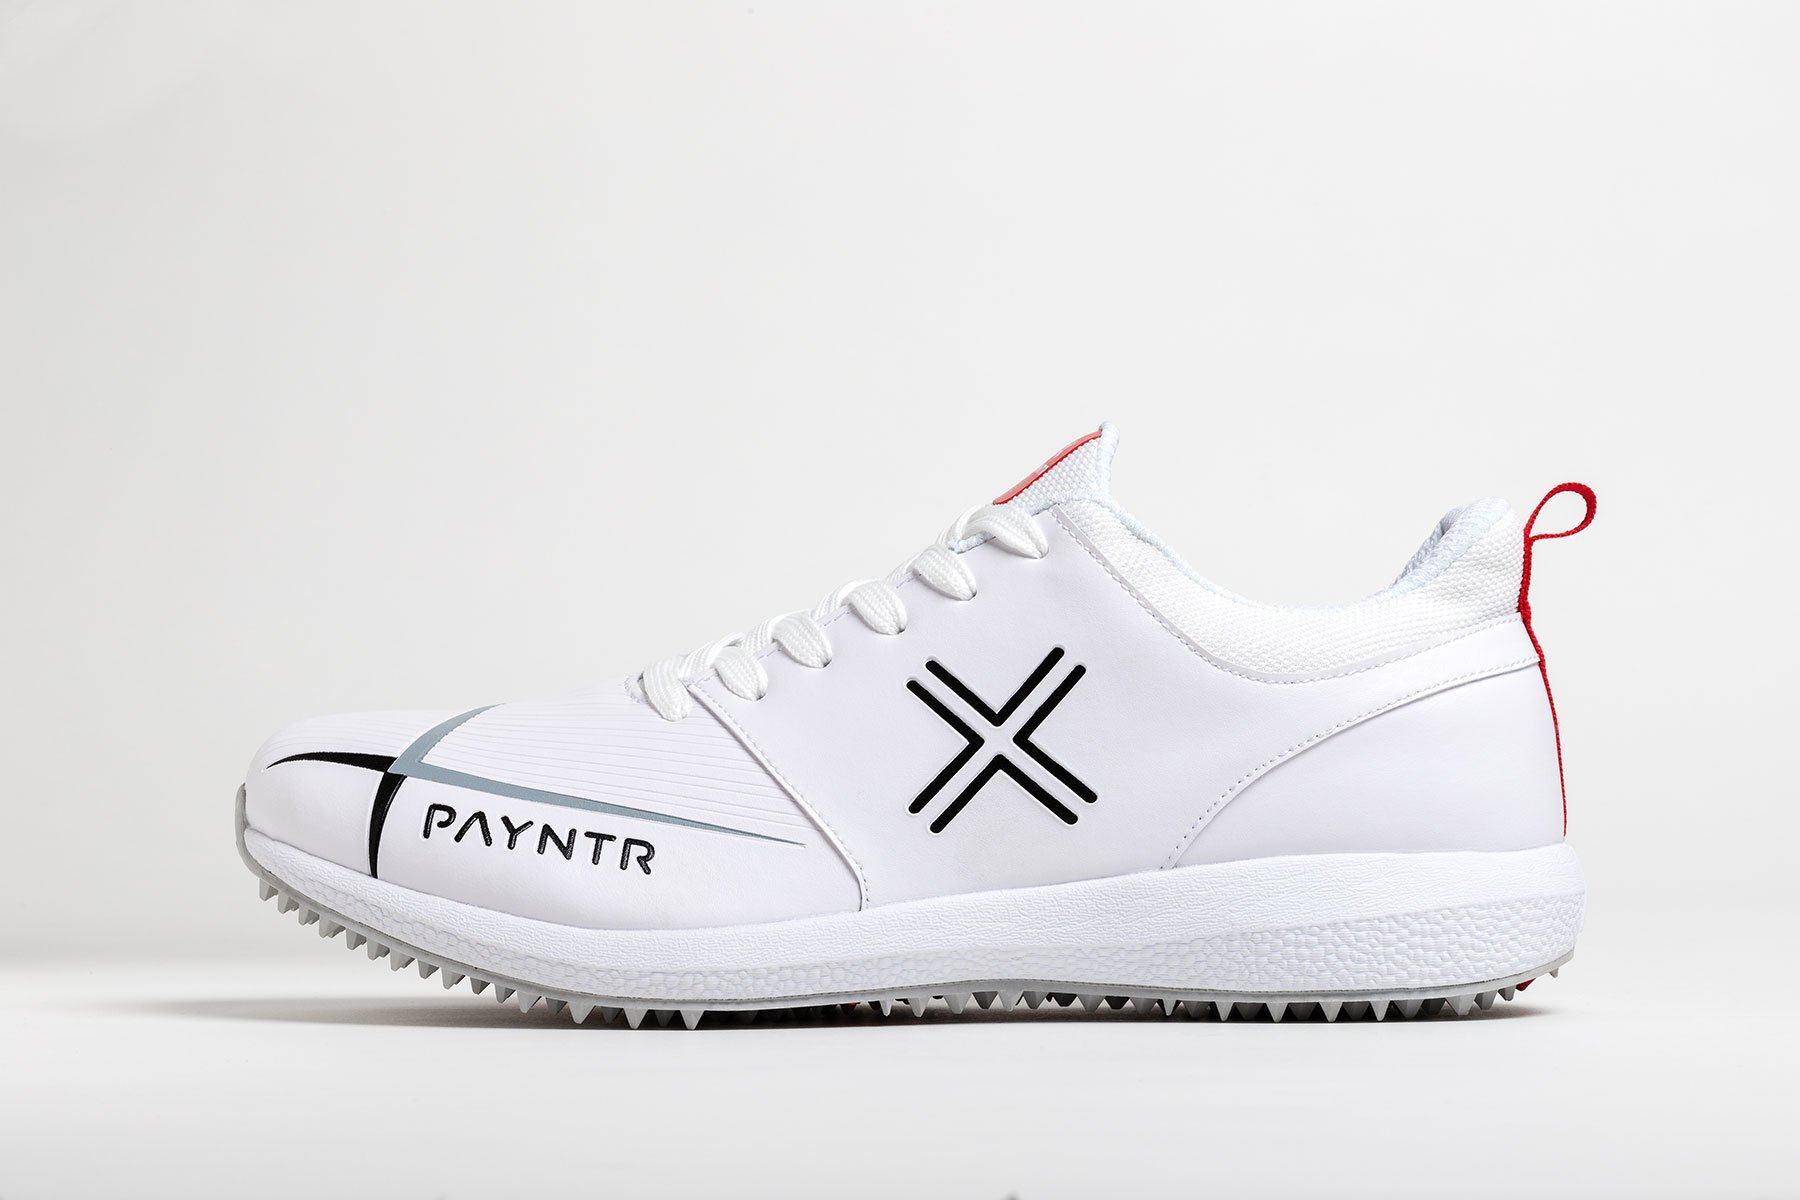 Payntr V Pimple - Classic White Cricket Shoes